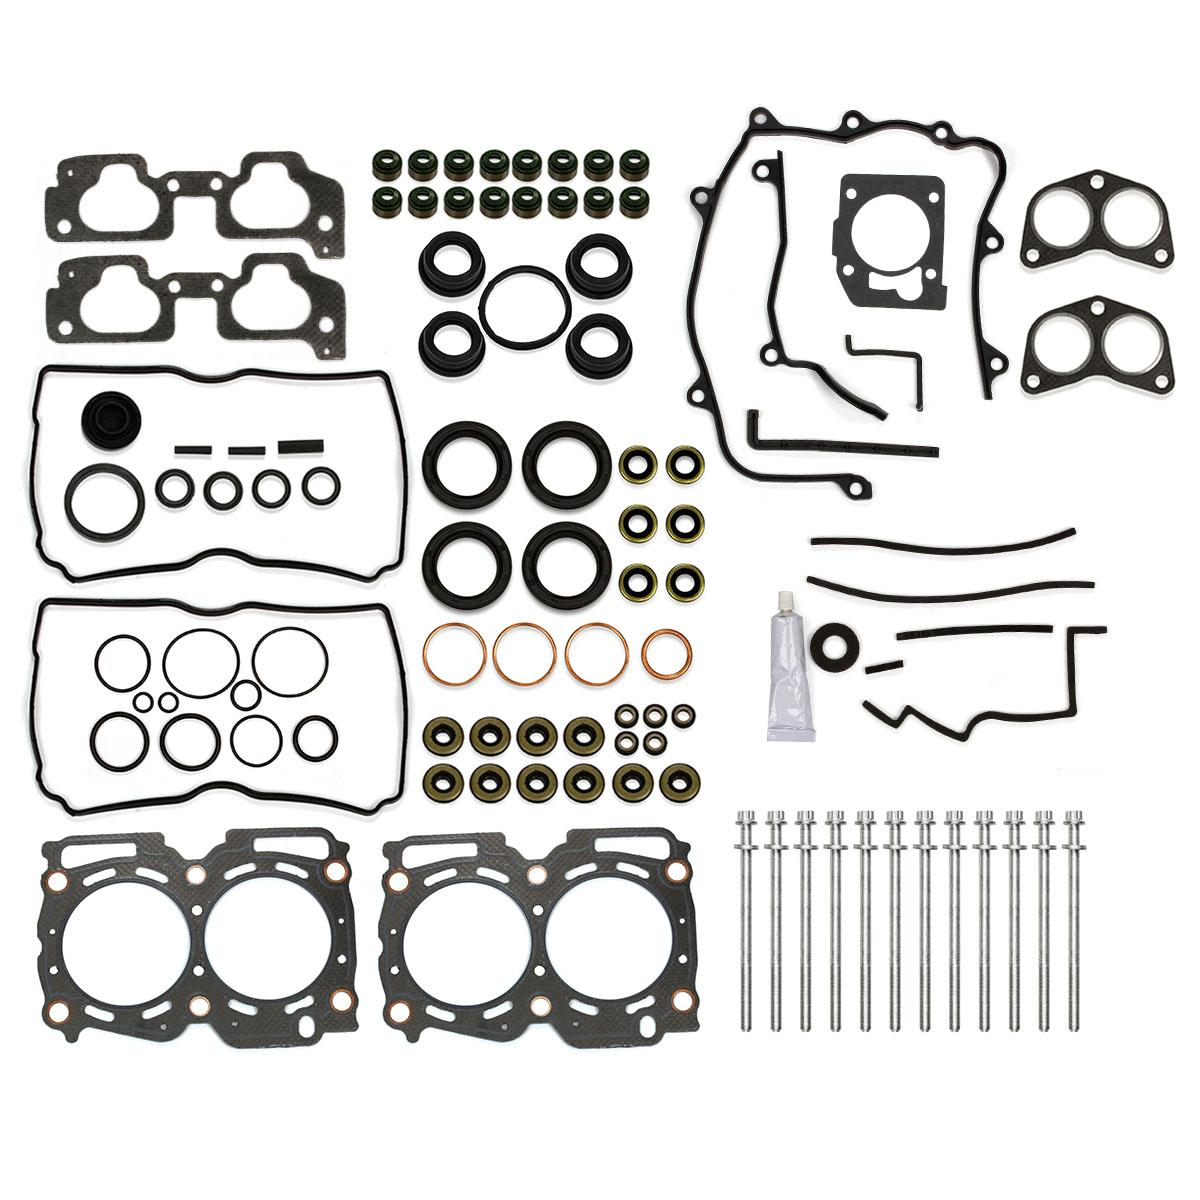 98 Jeep Grand Cherokee Engine Wiring Diagram furthermore Modp 1110 Aeromotive Fuel Pump Ams Turbo Kit furthermore Squier Strat Wiring Diagram together with Squier Strat Wiring Diagram as well Dodge Ram 1500 Carrier Bearing. on lift kit subaru legacy